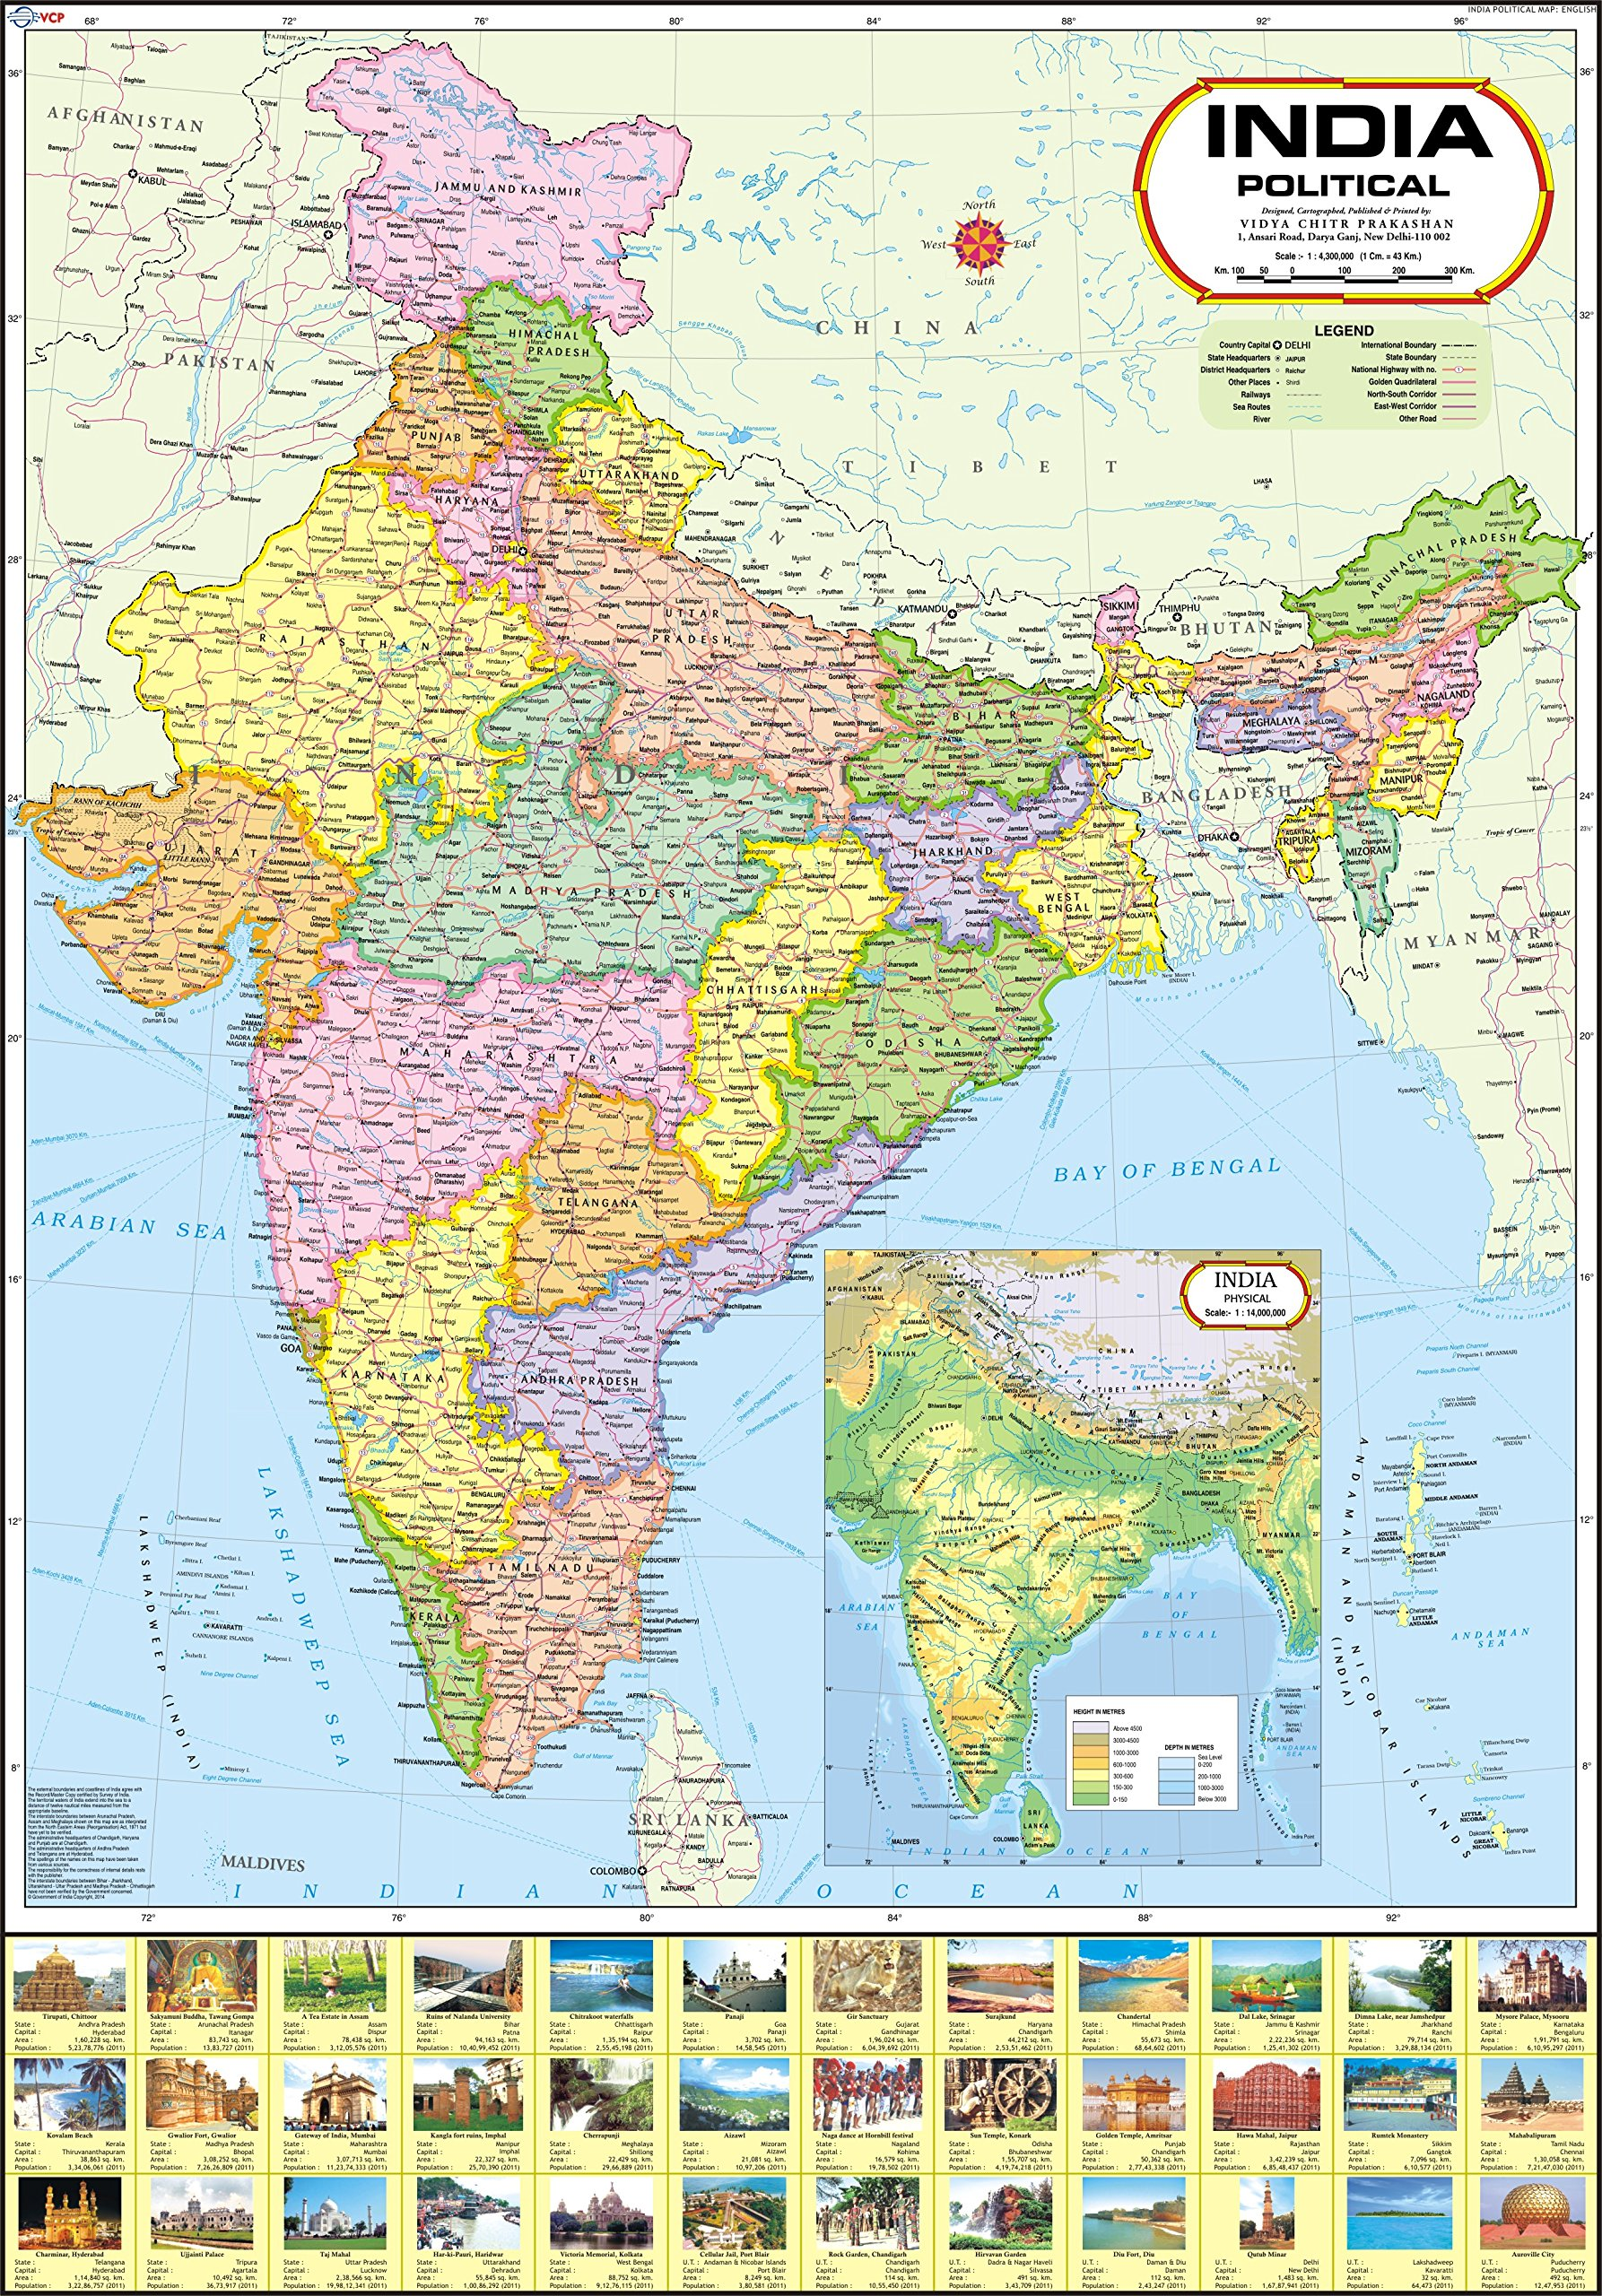 Buy india map political 70 x 100 cm book online at low prices in buy india map political 70 x 100 cm book online at low prices in india india map political 70 x 100 cm reviews ratings amazon gumiabroncs Images